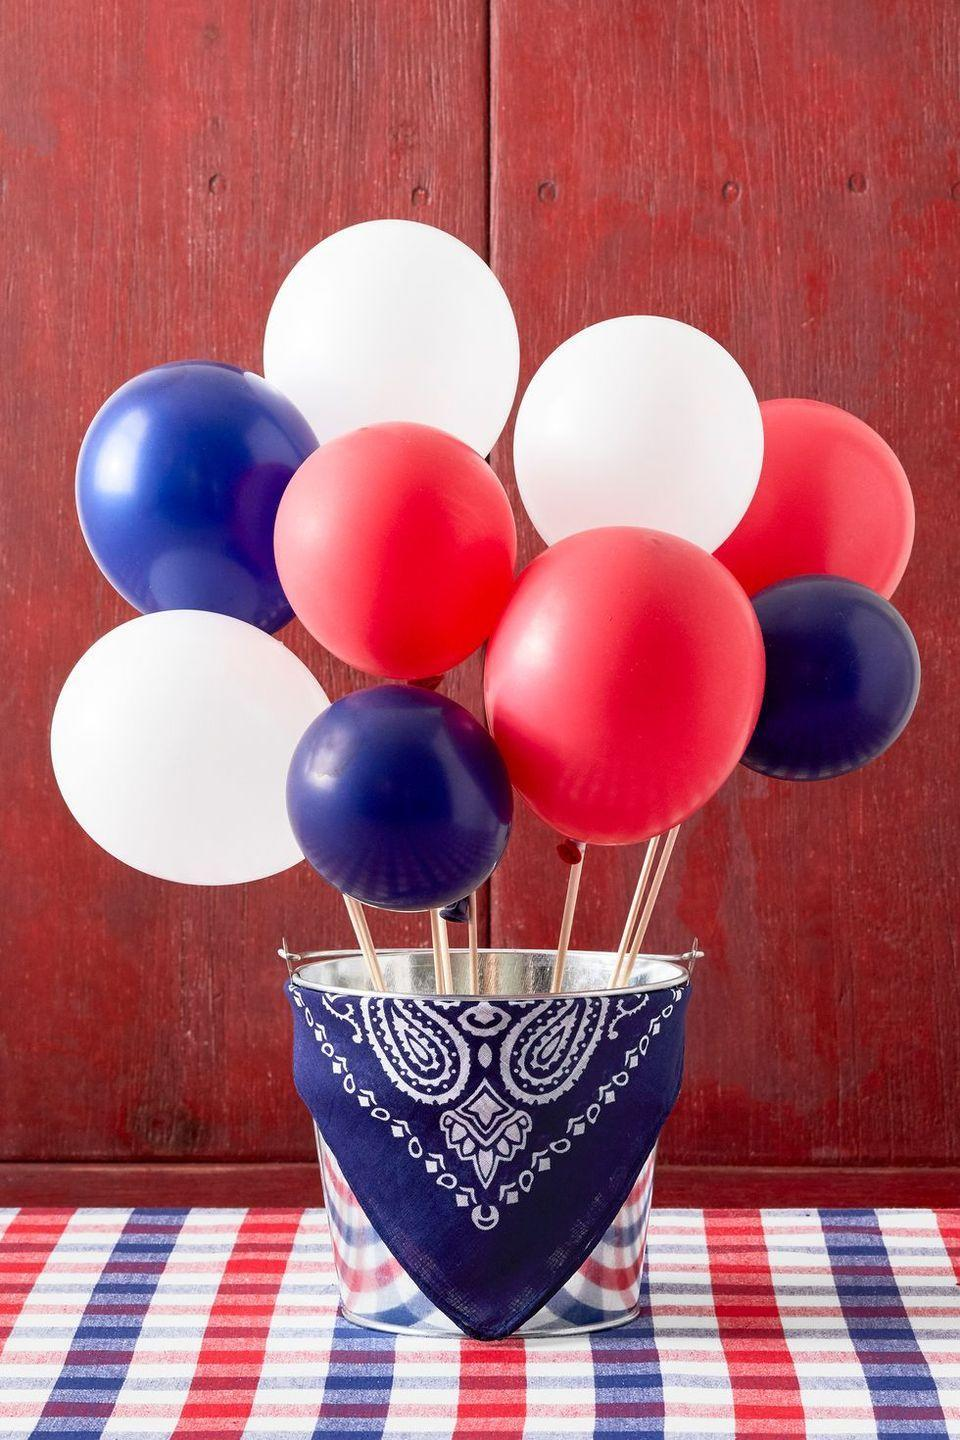 """<p>Yes, having balloons at your party is nice, but a balloon <em>centerpiece </em>is next-level. Affix balloons to wooden dowels, then place them in a bucket full of sand. </p><p><a class=""""link rapid-noclick-resp"""" href=""""https://go.redirectingat.com?id=74968X1596630&url=https%3A%2F%2Fwww.walmart.com%2Fsearch%2F%3Fquery%3Dwooden%2Bdowels&sref=https%3A%2F%2Fwww.thepioneerwoman.com%2Fjust-for-fun%2Fg36599700%2Fsummer-party-ideas%2F"""" rel=""""nofollow noopener"""" target=""""_blank"""" data-ylk=""""slk:SHOP WOODEN DOWELS"""">SHOP WOODEN DOWELS</a></p>"""